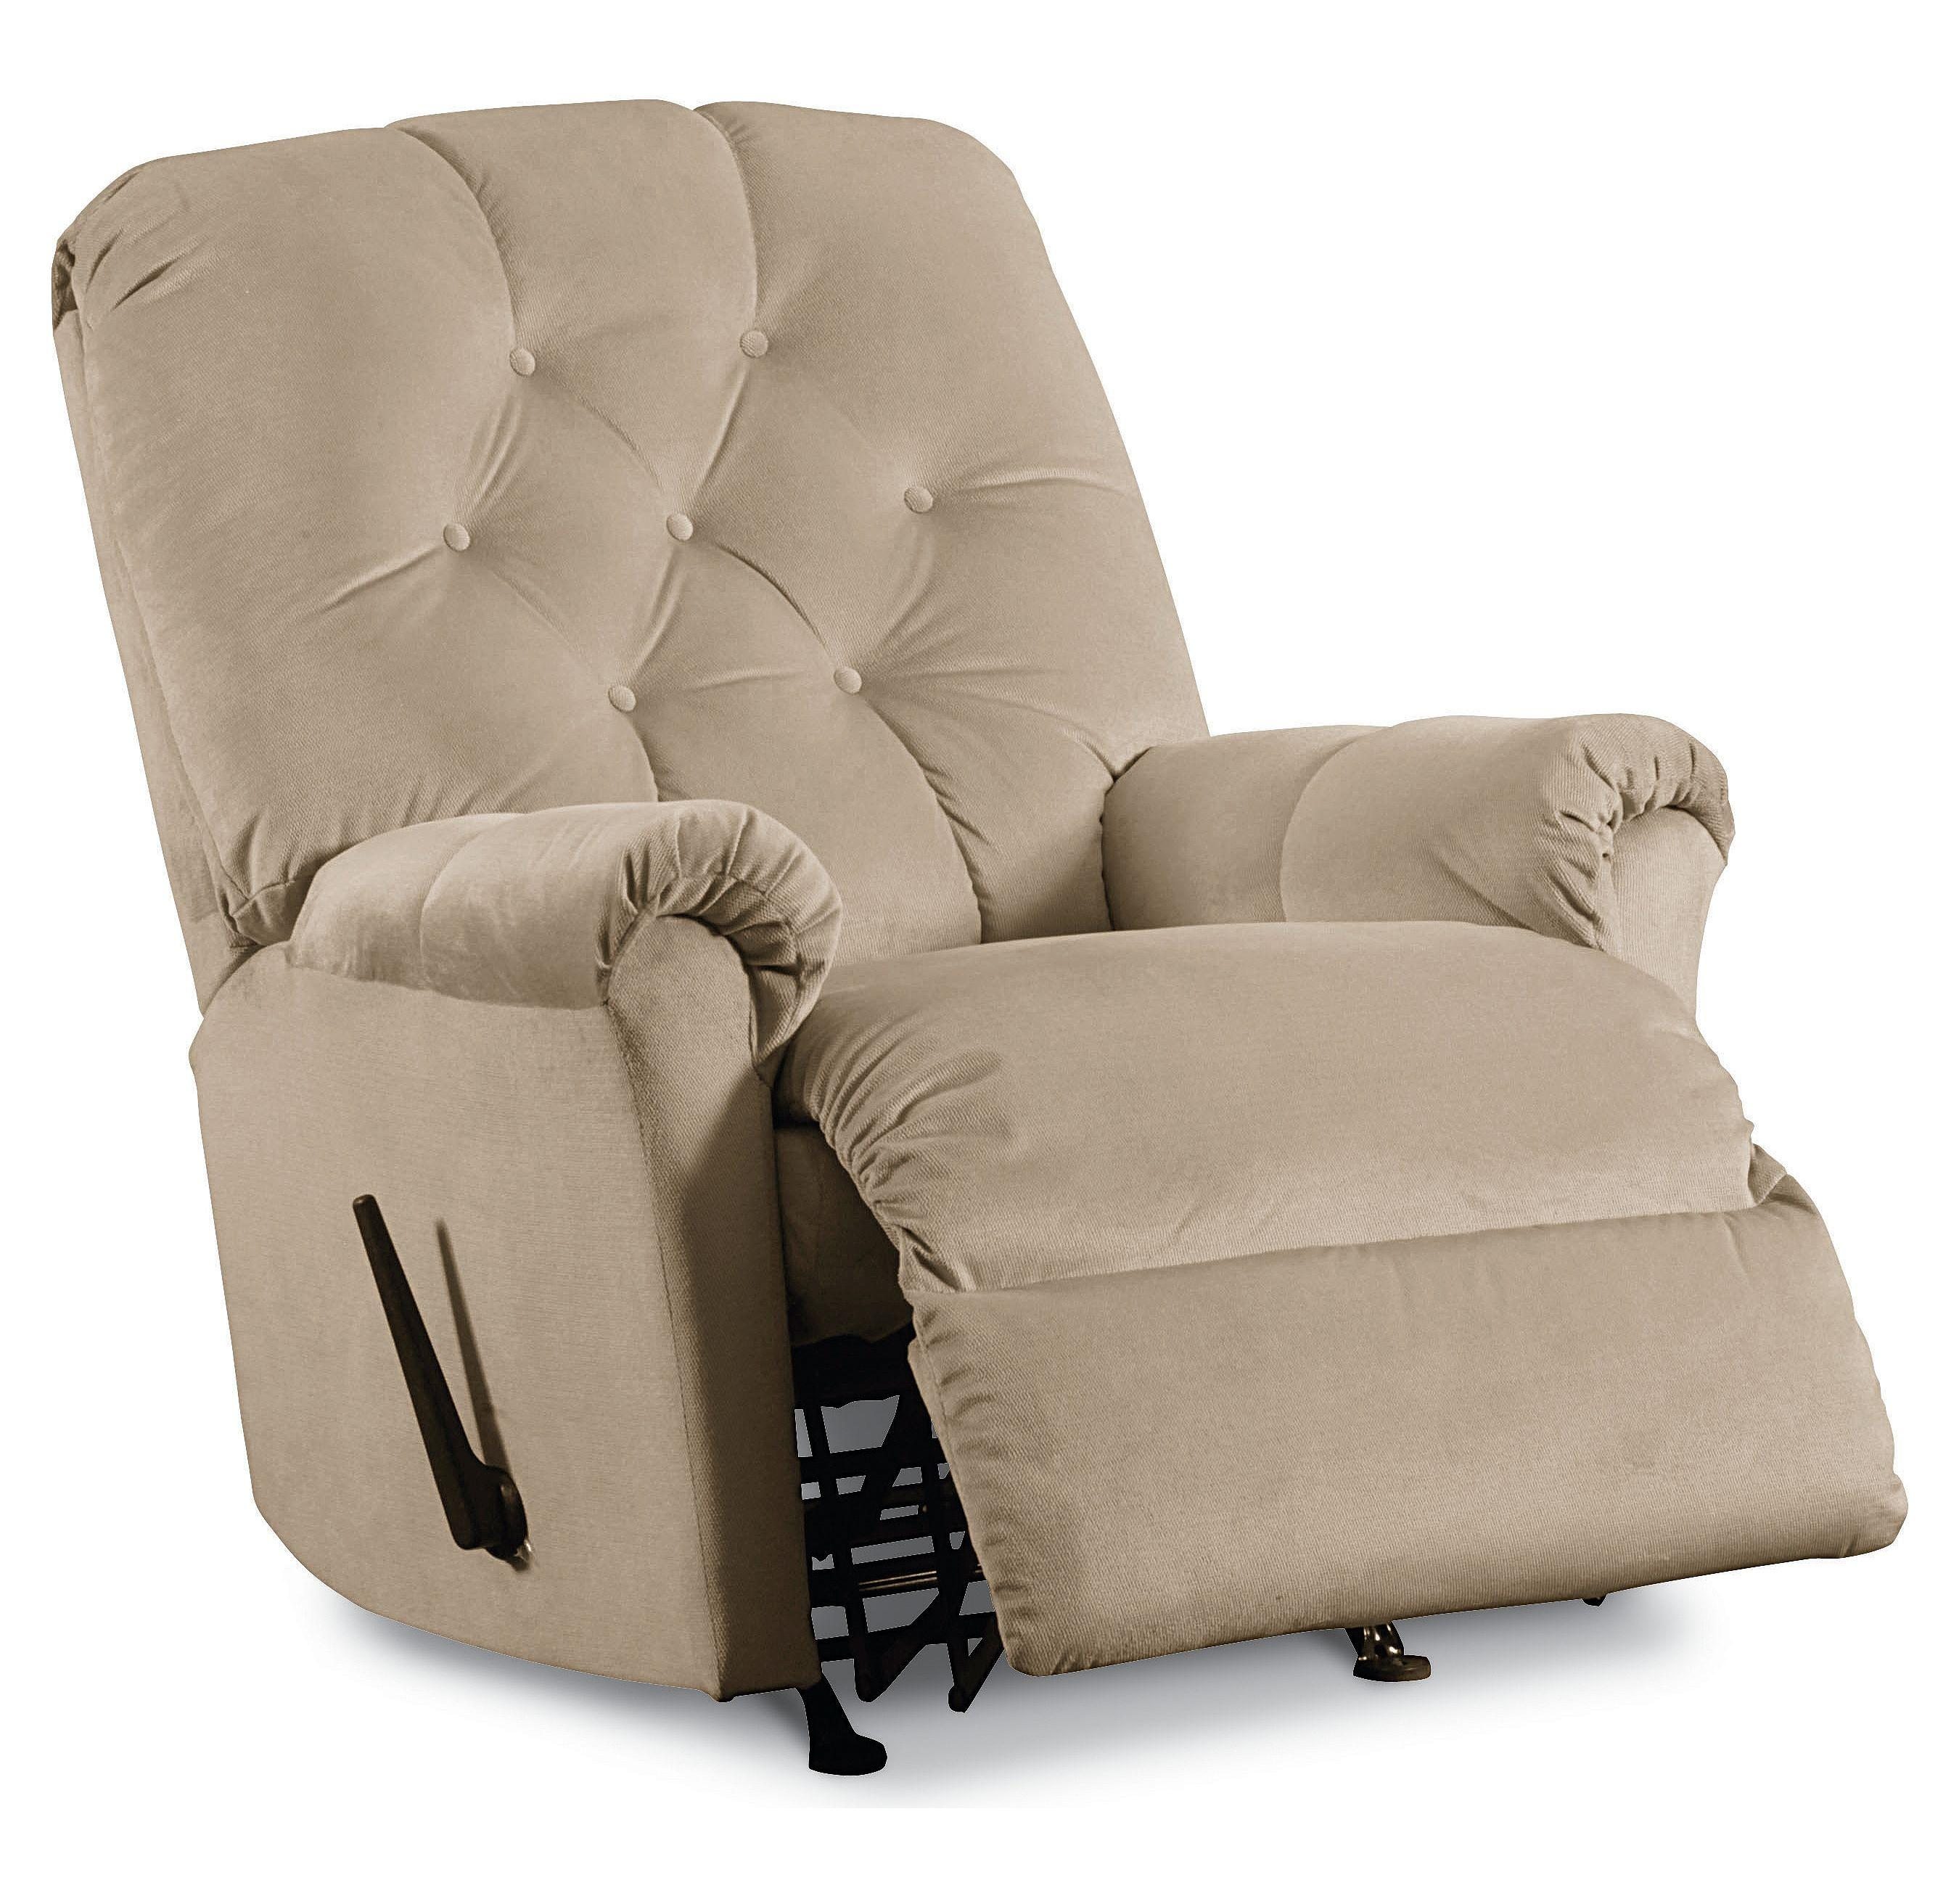 Lane rocker recliners 11797s miles pad over chaise tufted for Bulldog pad over chaise rocker recliner